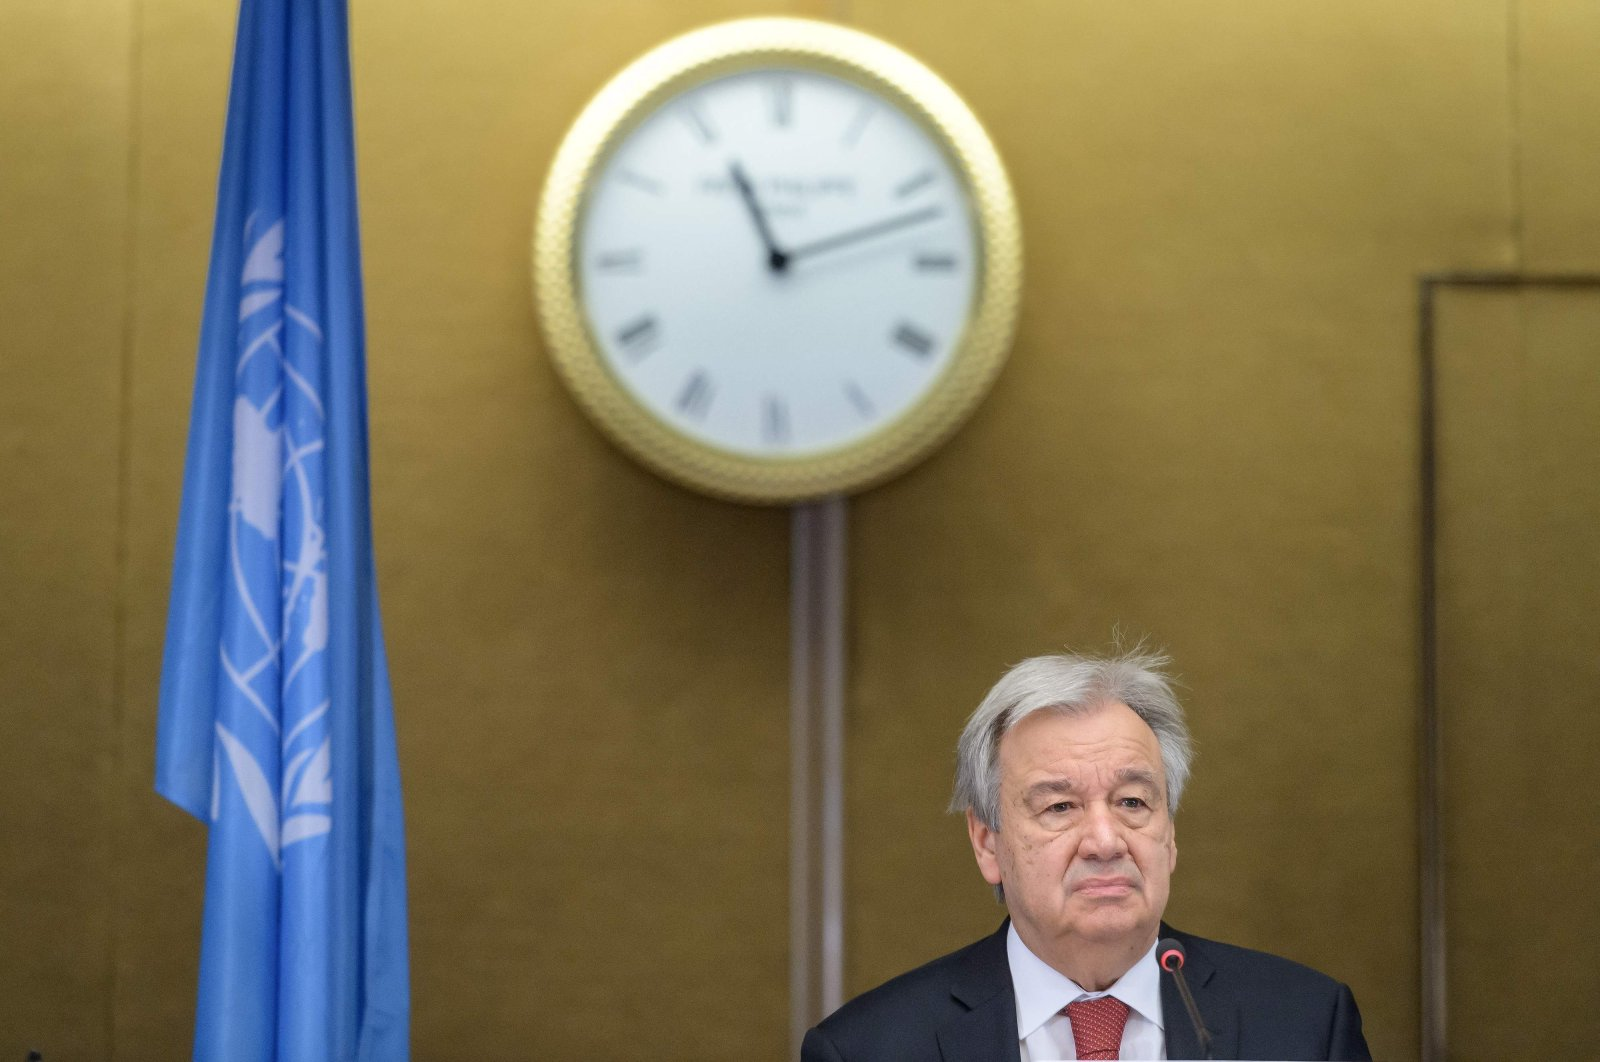 U.N. Secretary-General Antonio Guterres attends a news conference at the end of a 5 1 Meeting on Cyprus, April 29, 2021. (AFP File Photo)